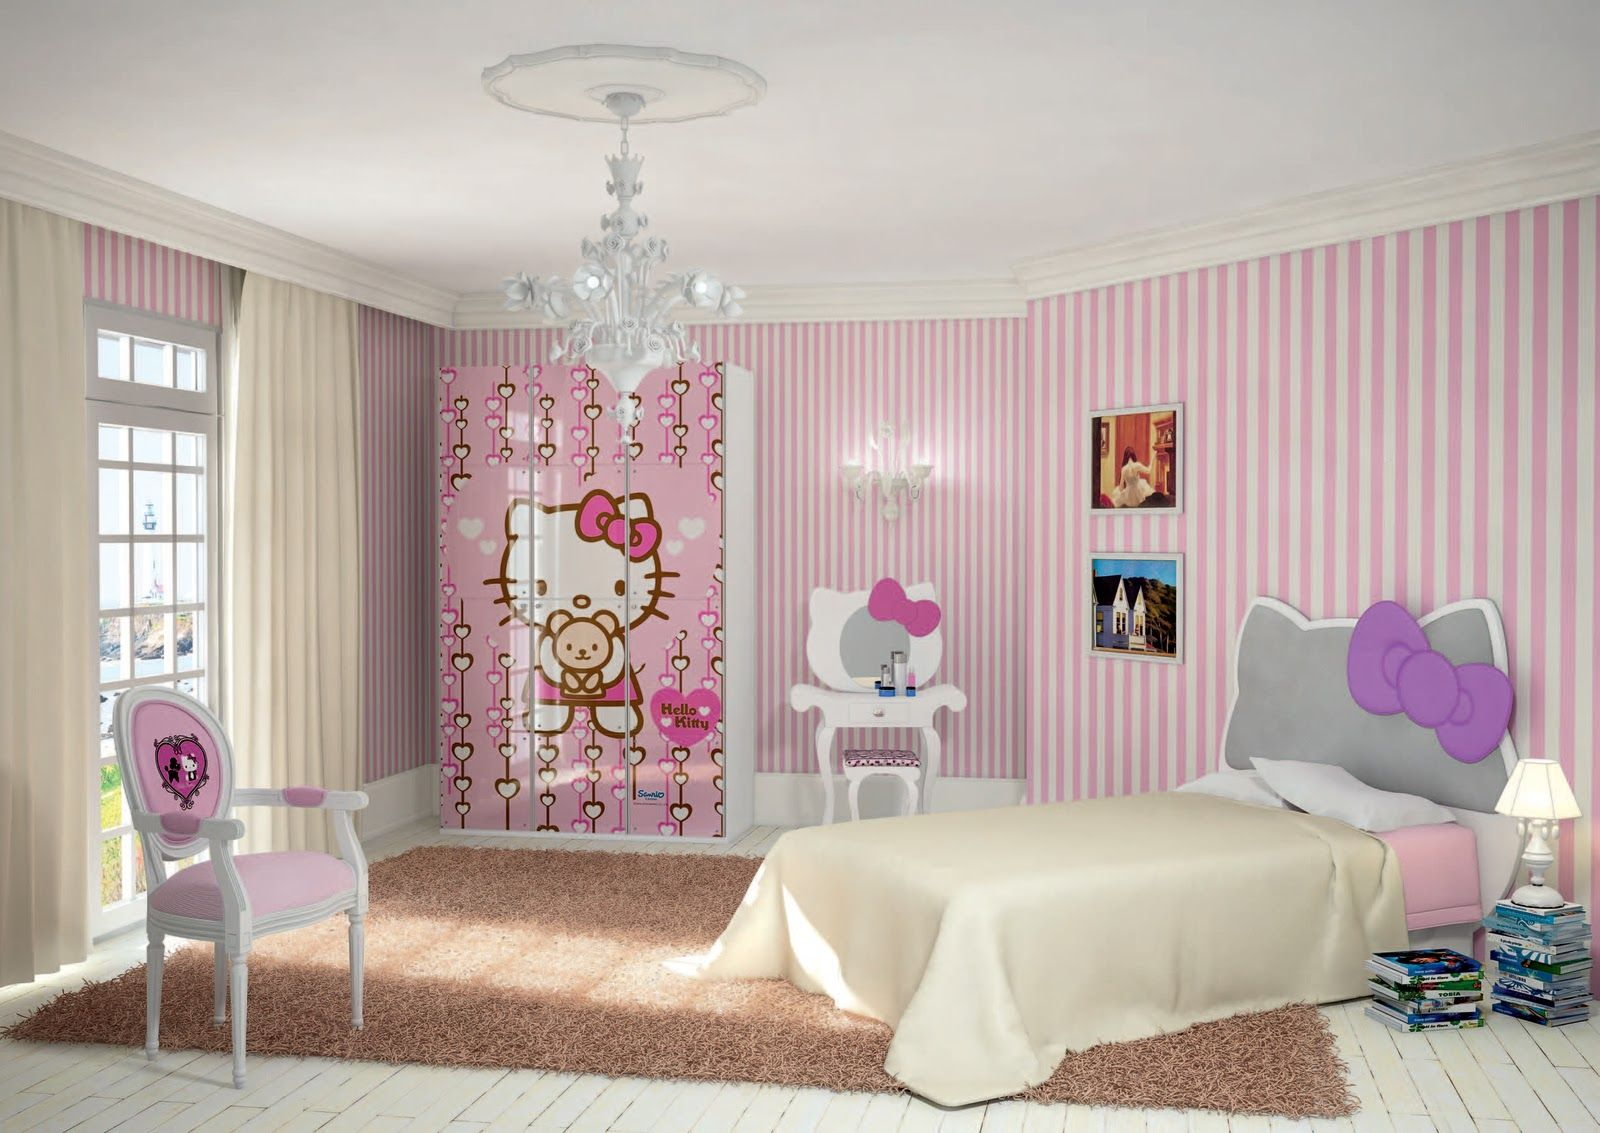 HK room | Girl bedroom decor, Hello kitty rooms, Teenage ...